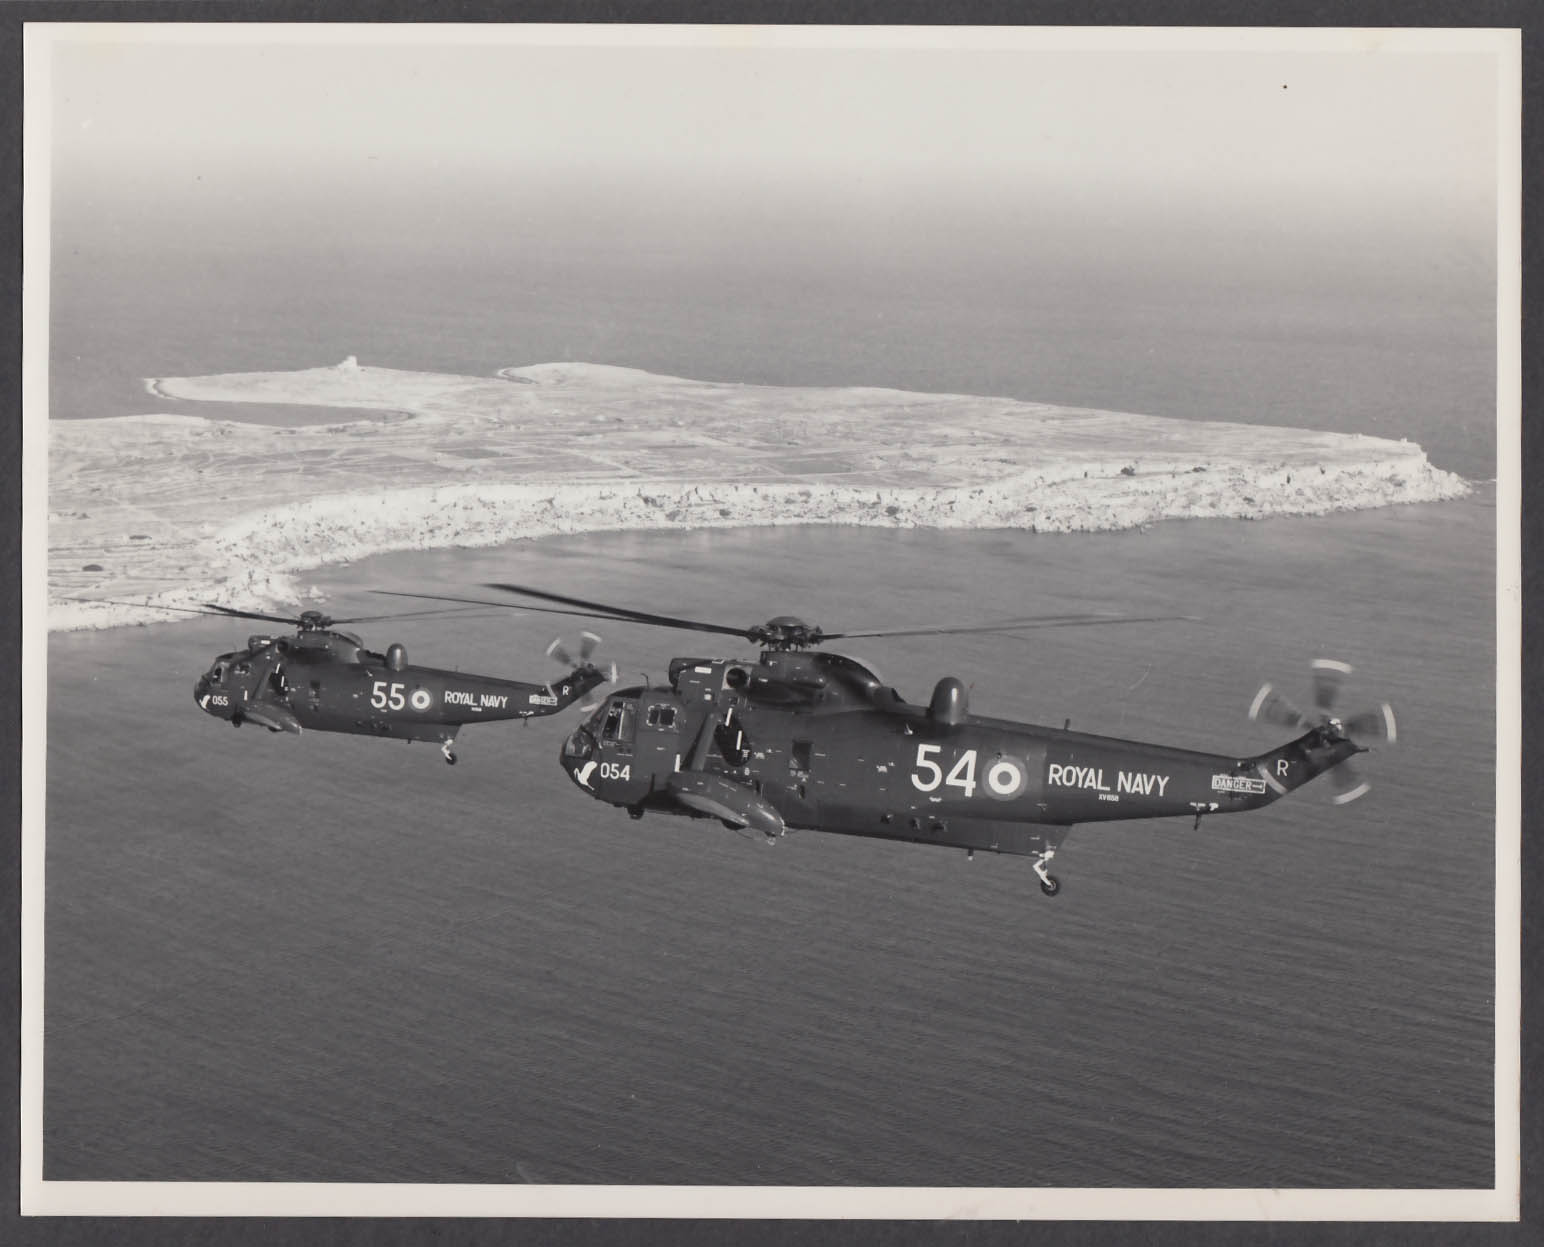 Image for Royal Navy Sea King 54 55 in flight 8x10 photo